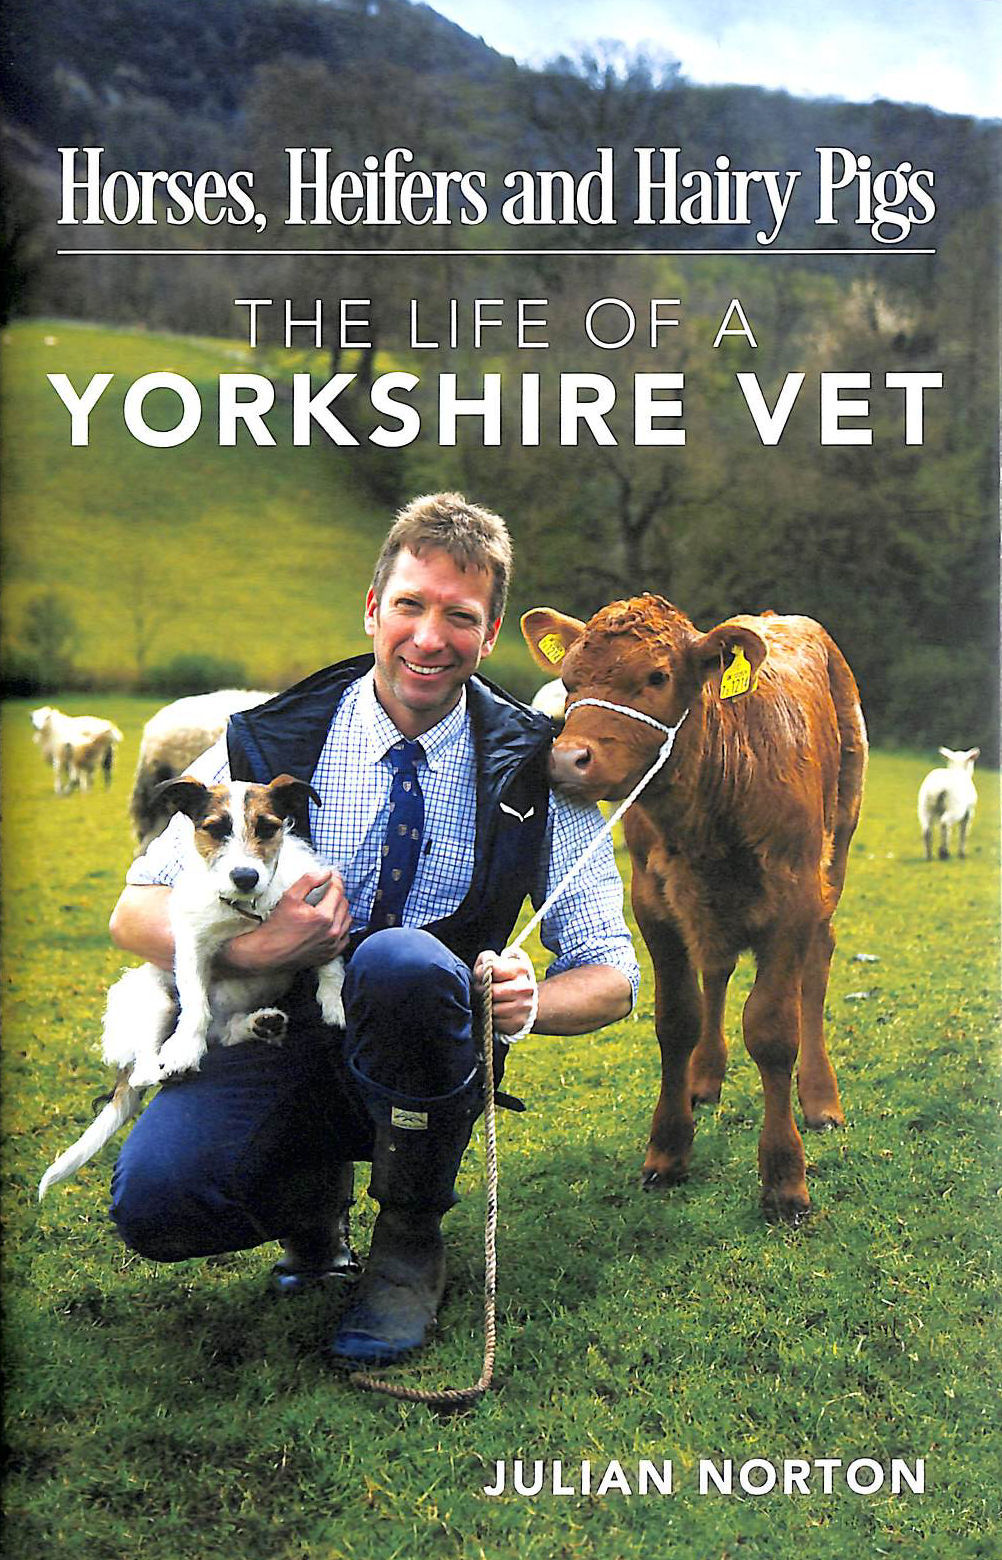 Image for Horses, Heifers And Hairy Pigs: The Life Of A Yorkshire Vet